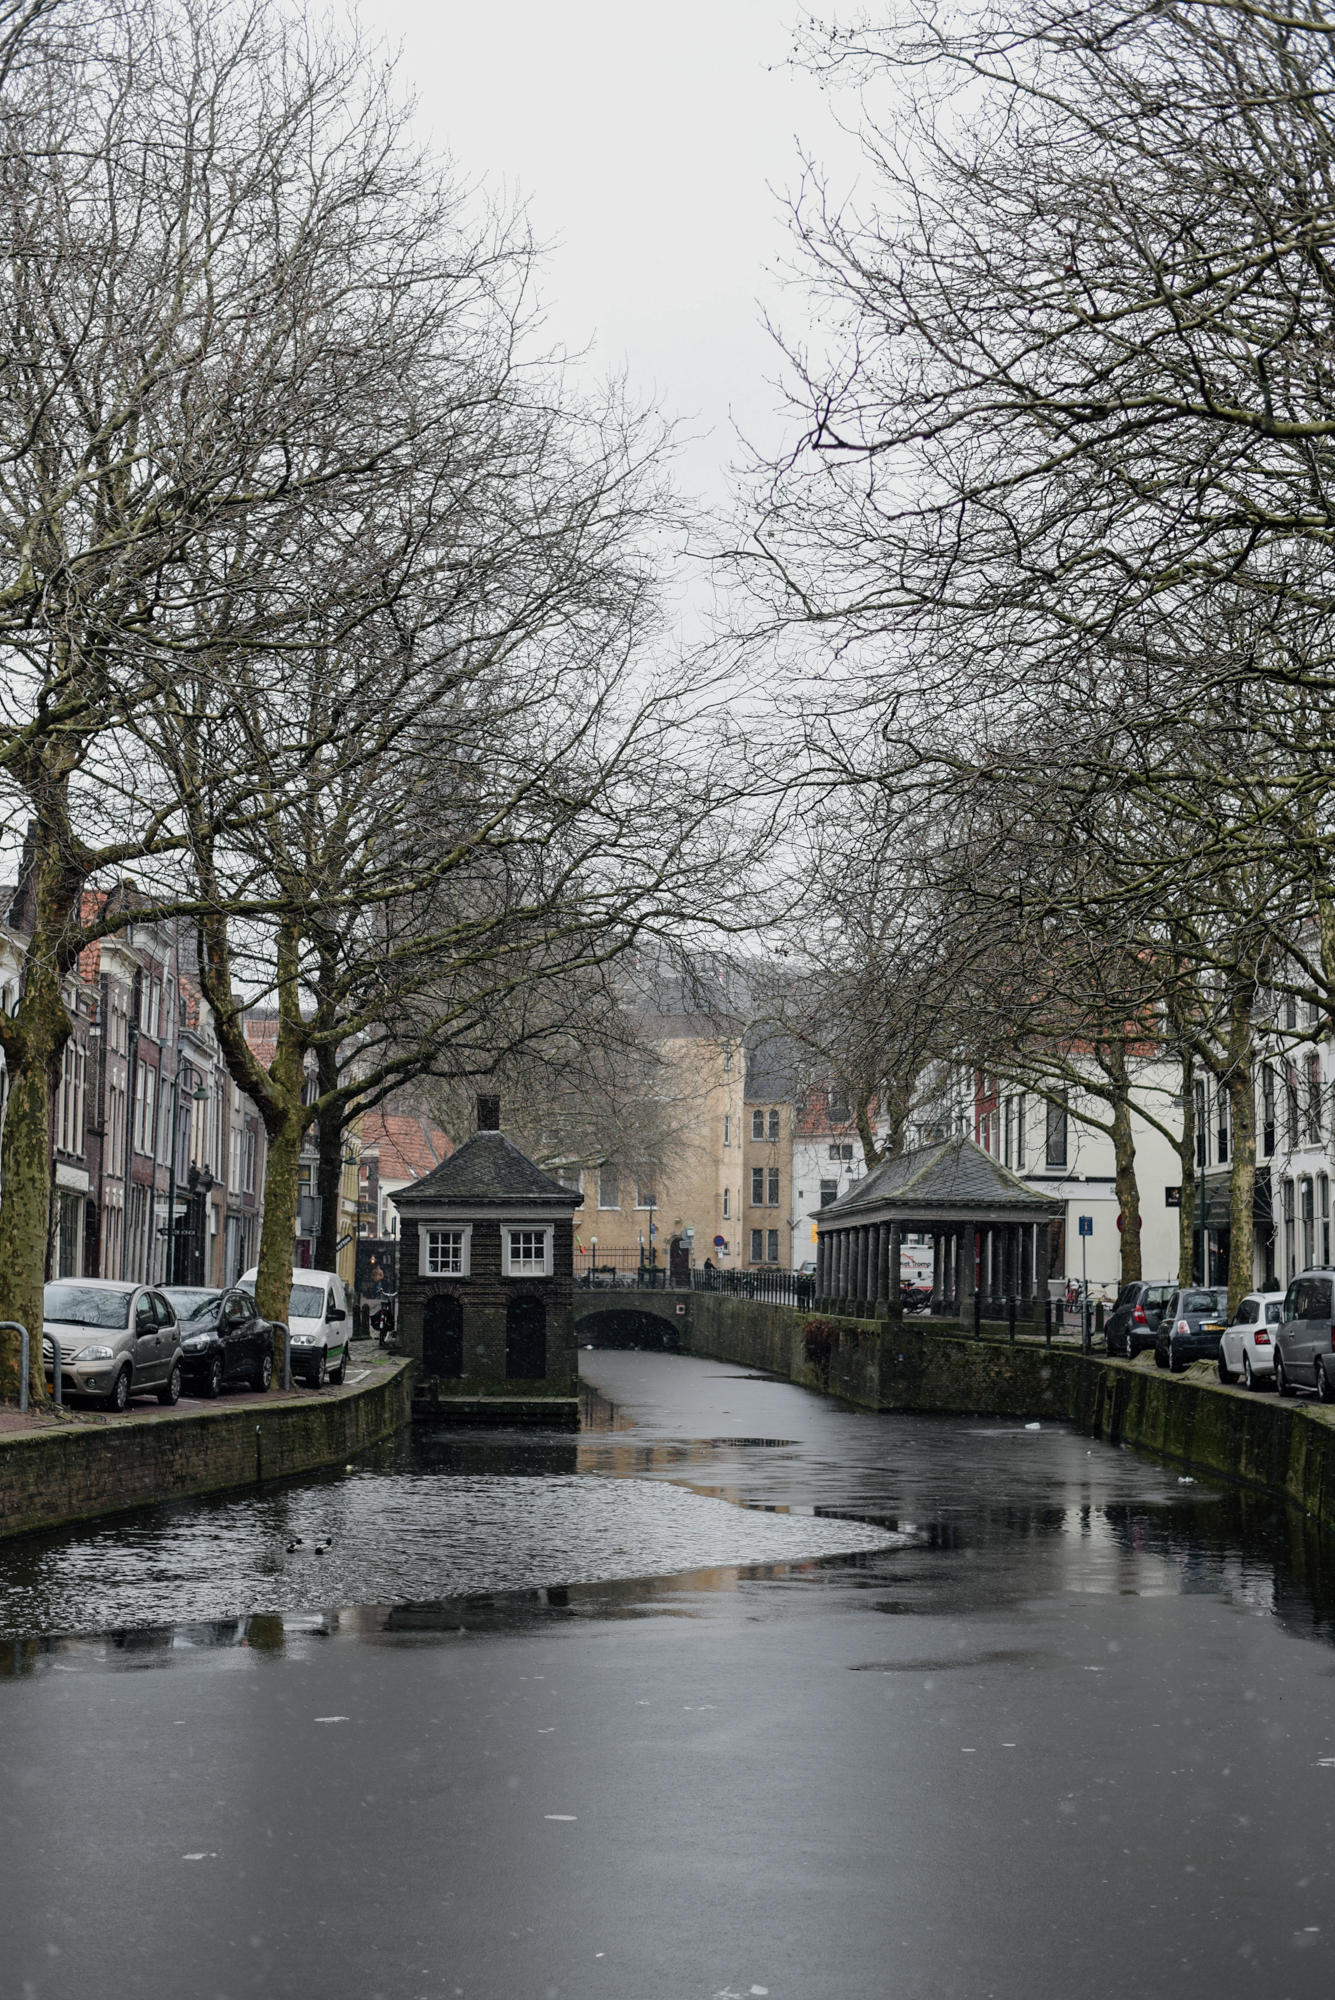 Canals in Gouda The Netherlands